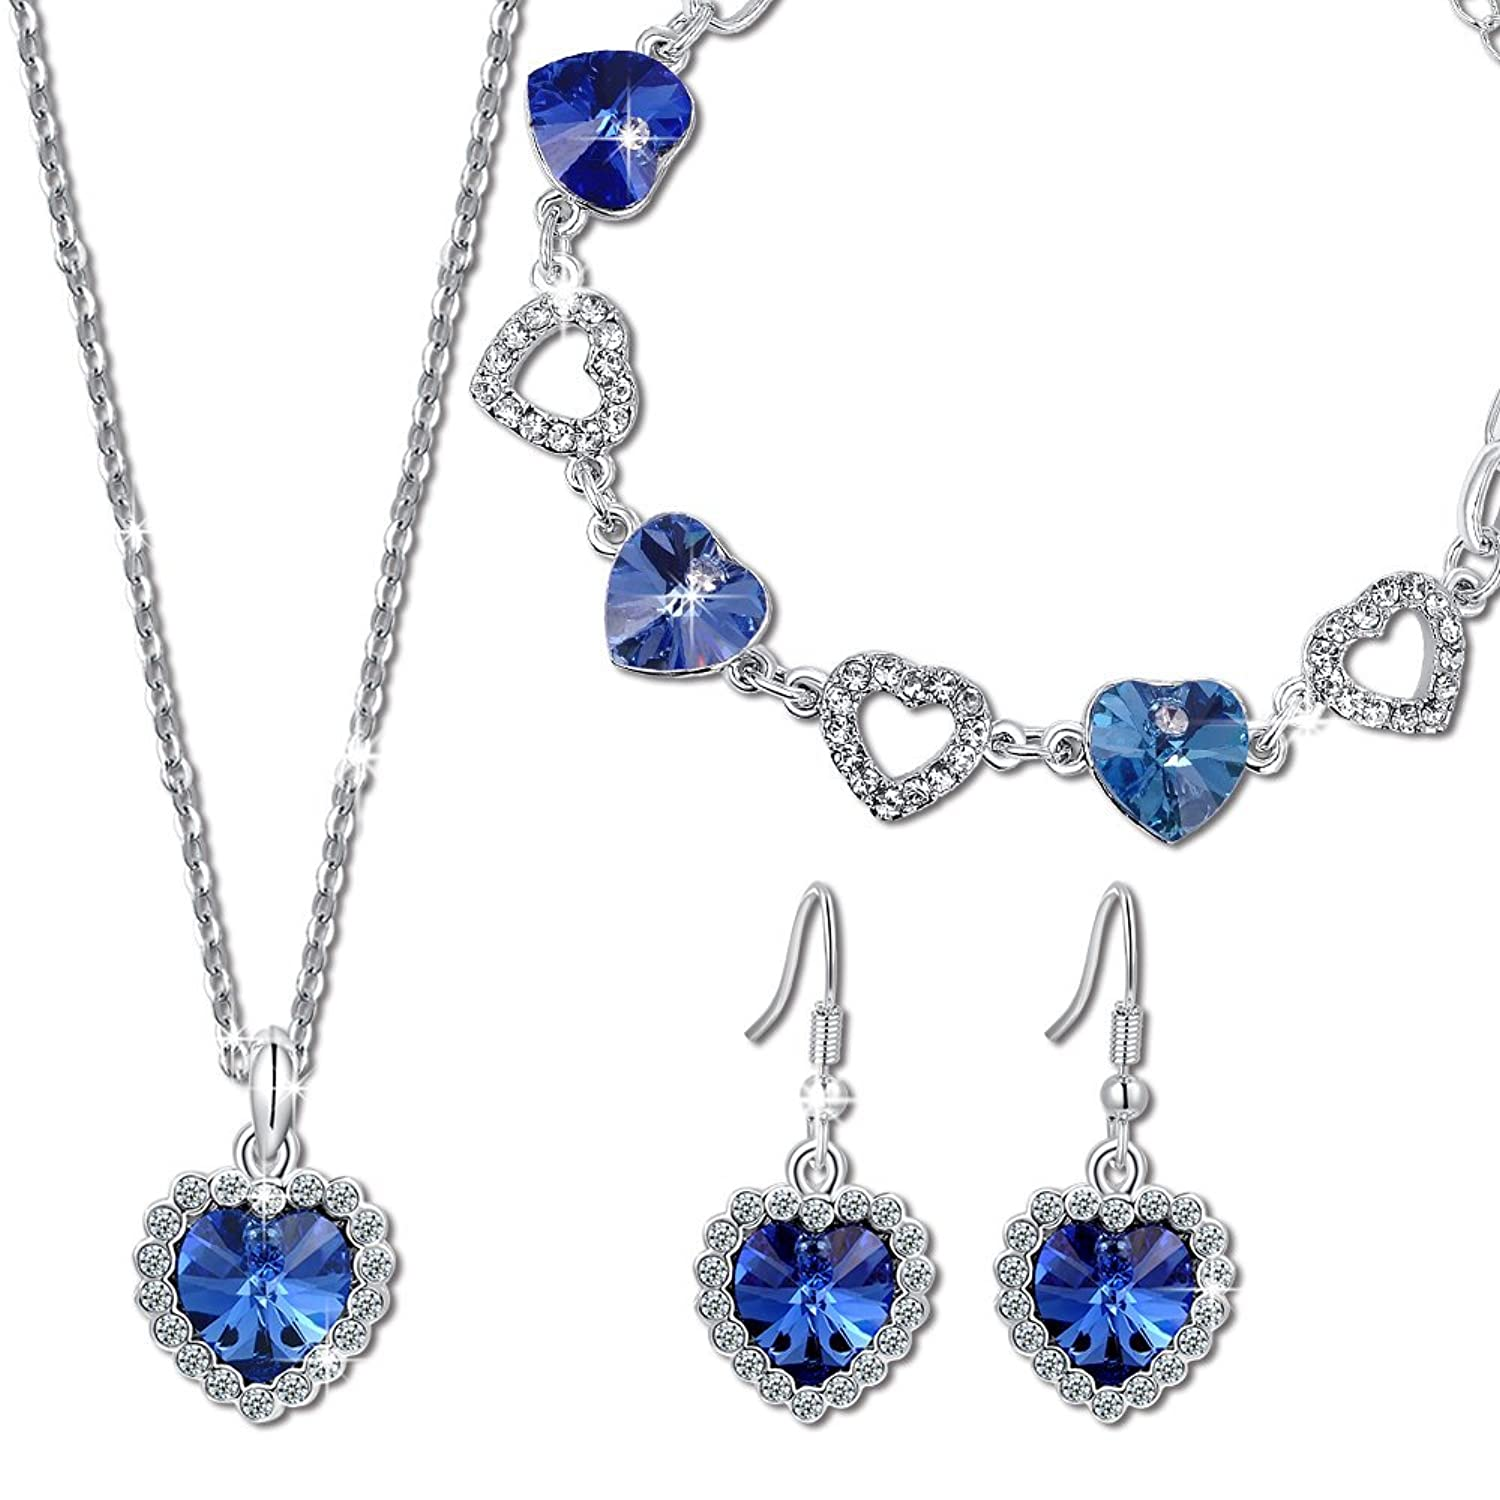 Swarovski Birthstone Crystals Make Lovely Jewelry Birth